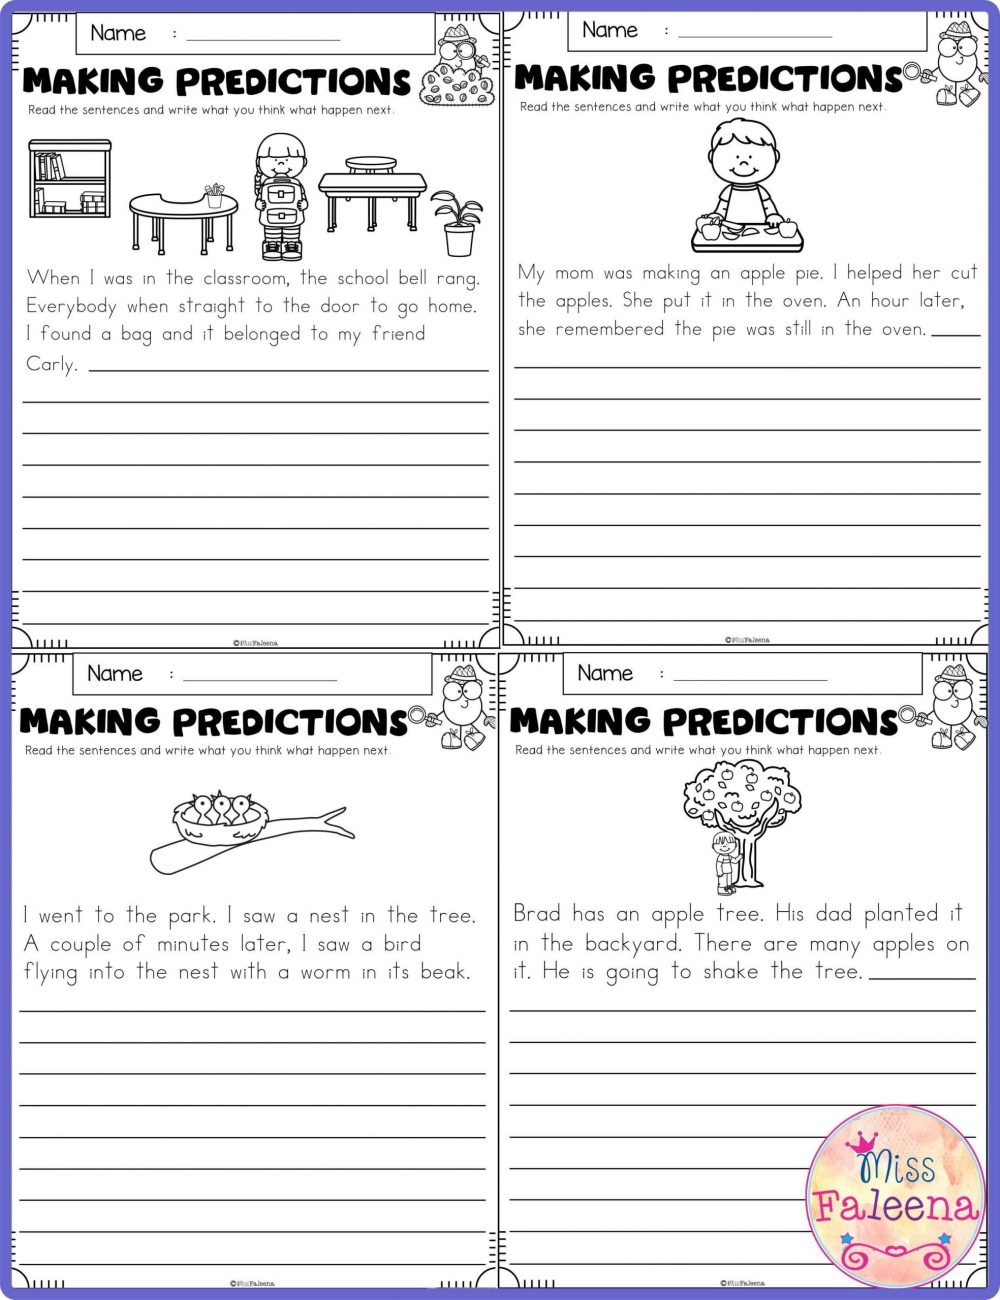 medium resolution of Science Making Predictions Worksheet   Printable Worksheets and Activities  for Teachers